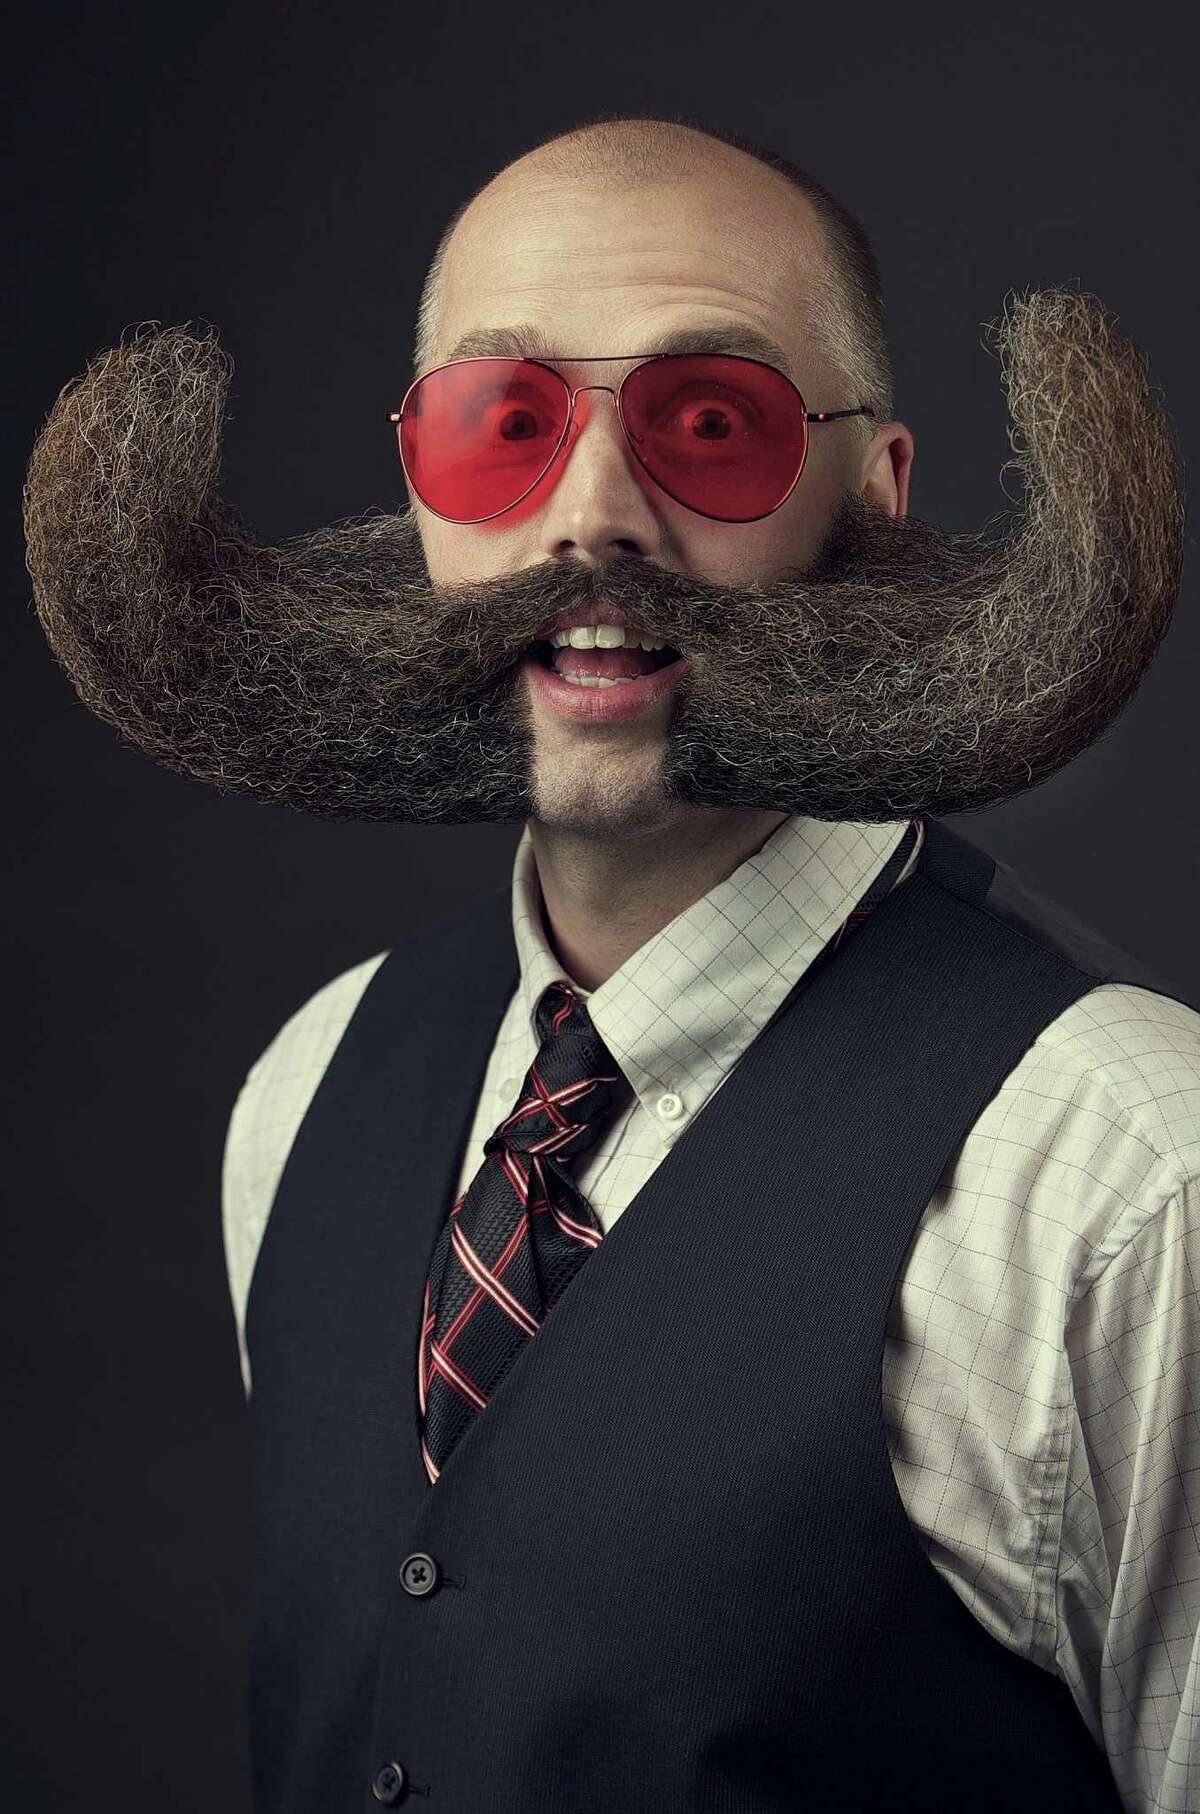 The Just For Men World Beard and Moustache Championships crowned 18 title winners, highlighting the best and boldest examples of facial hair from across the globe on Saturday, October 25th, 2014 in Portland, OR.